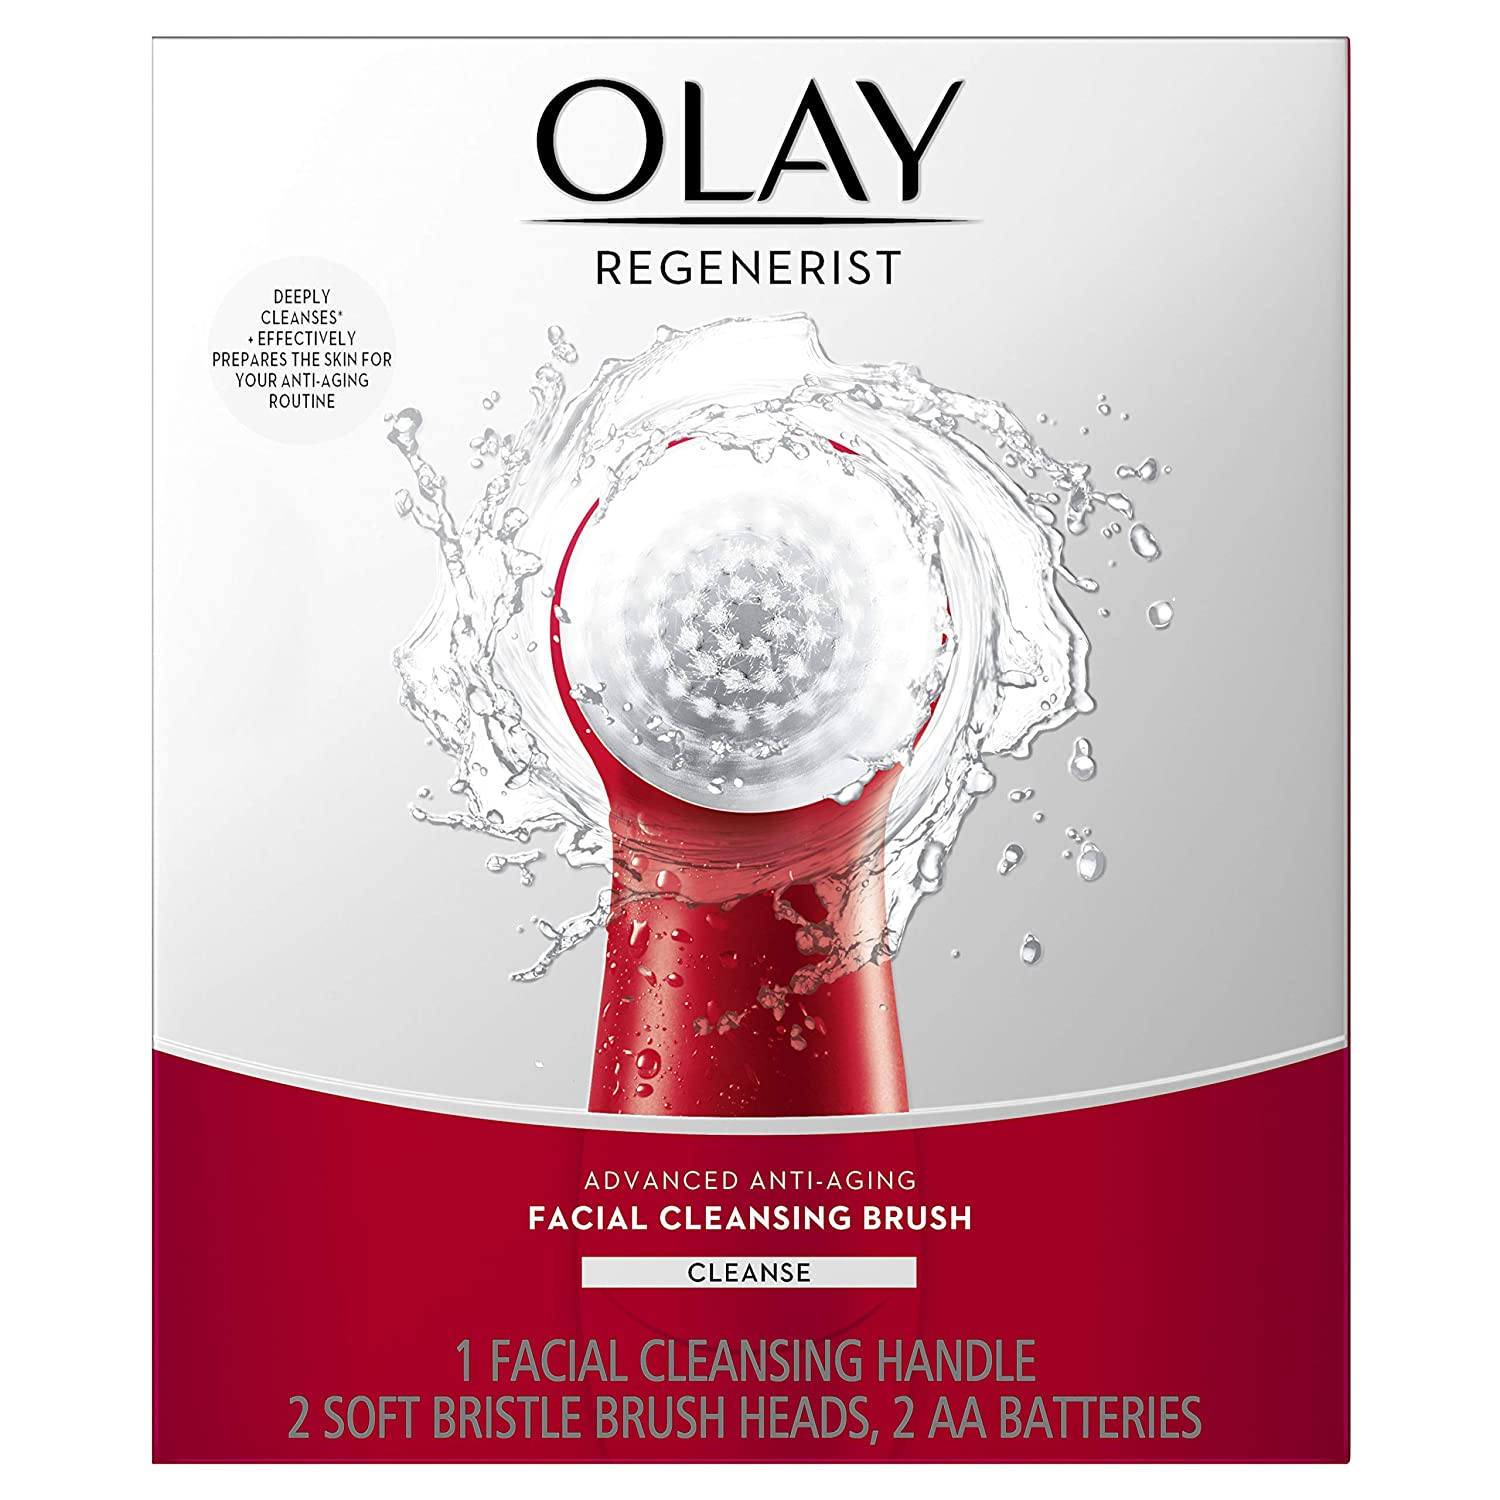 Facial Cleansing Brush by Olay Regenerist, Face Exfoliator with 2 Brush Heads best face cleansing brush